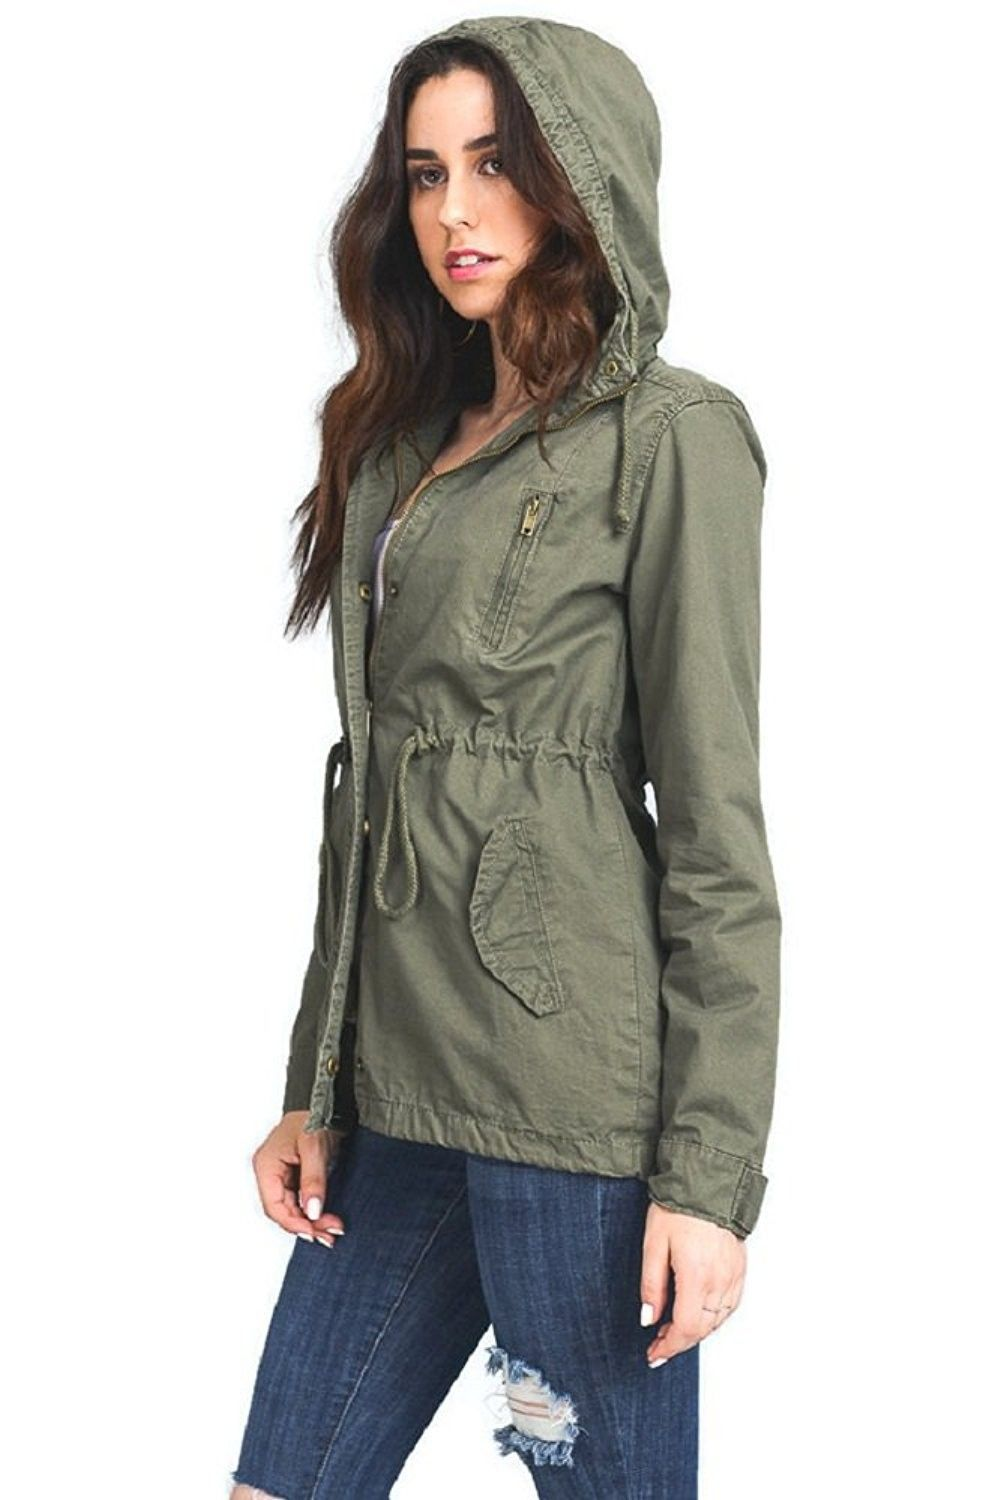 8556fa7ed03 Women s Anorak Safari Hoodie Jacket Up to Plus Size - Olive ...